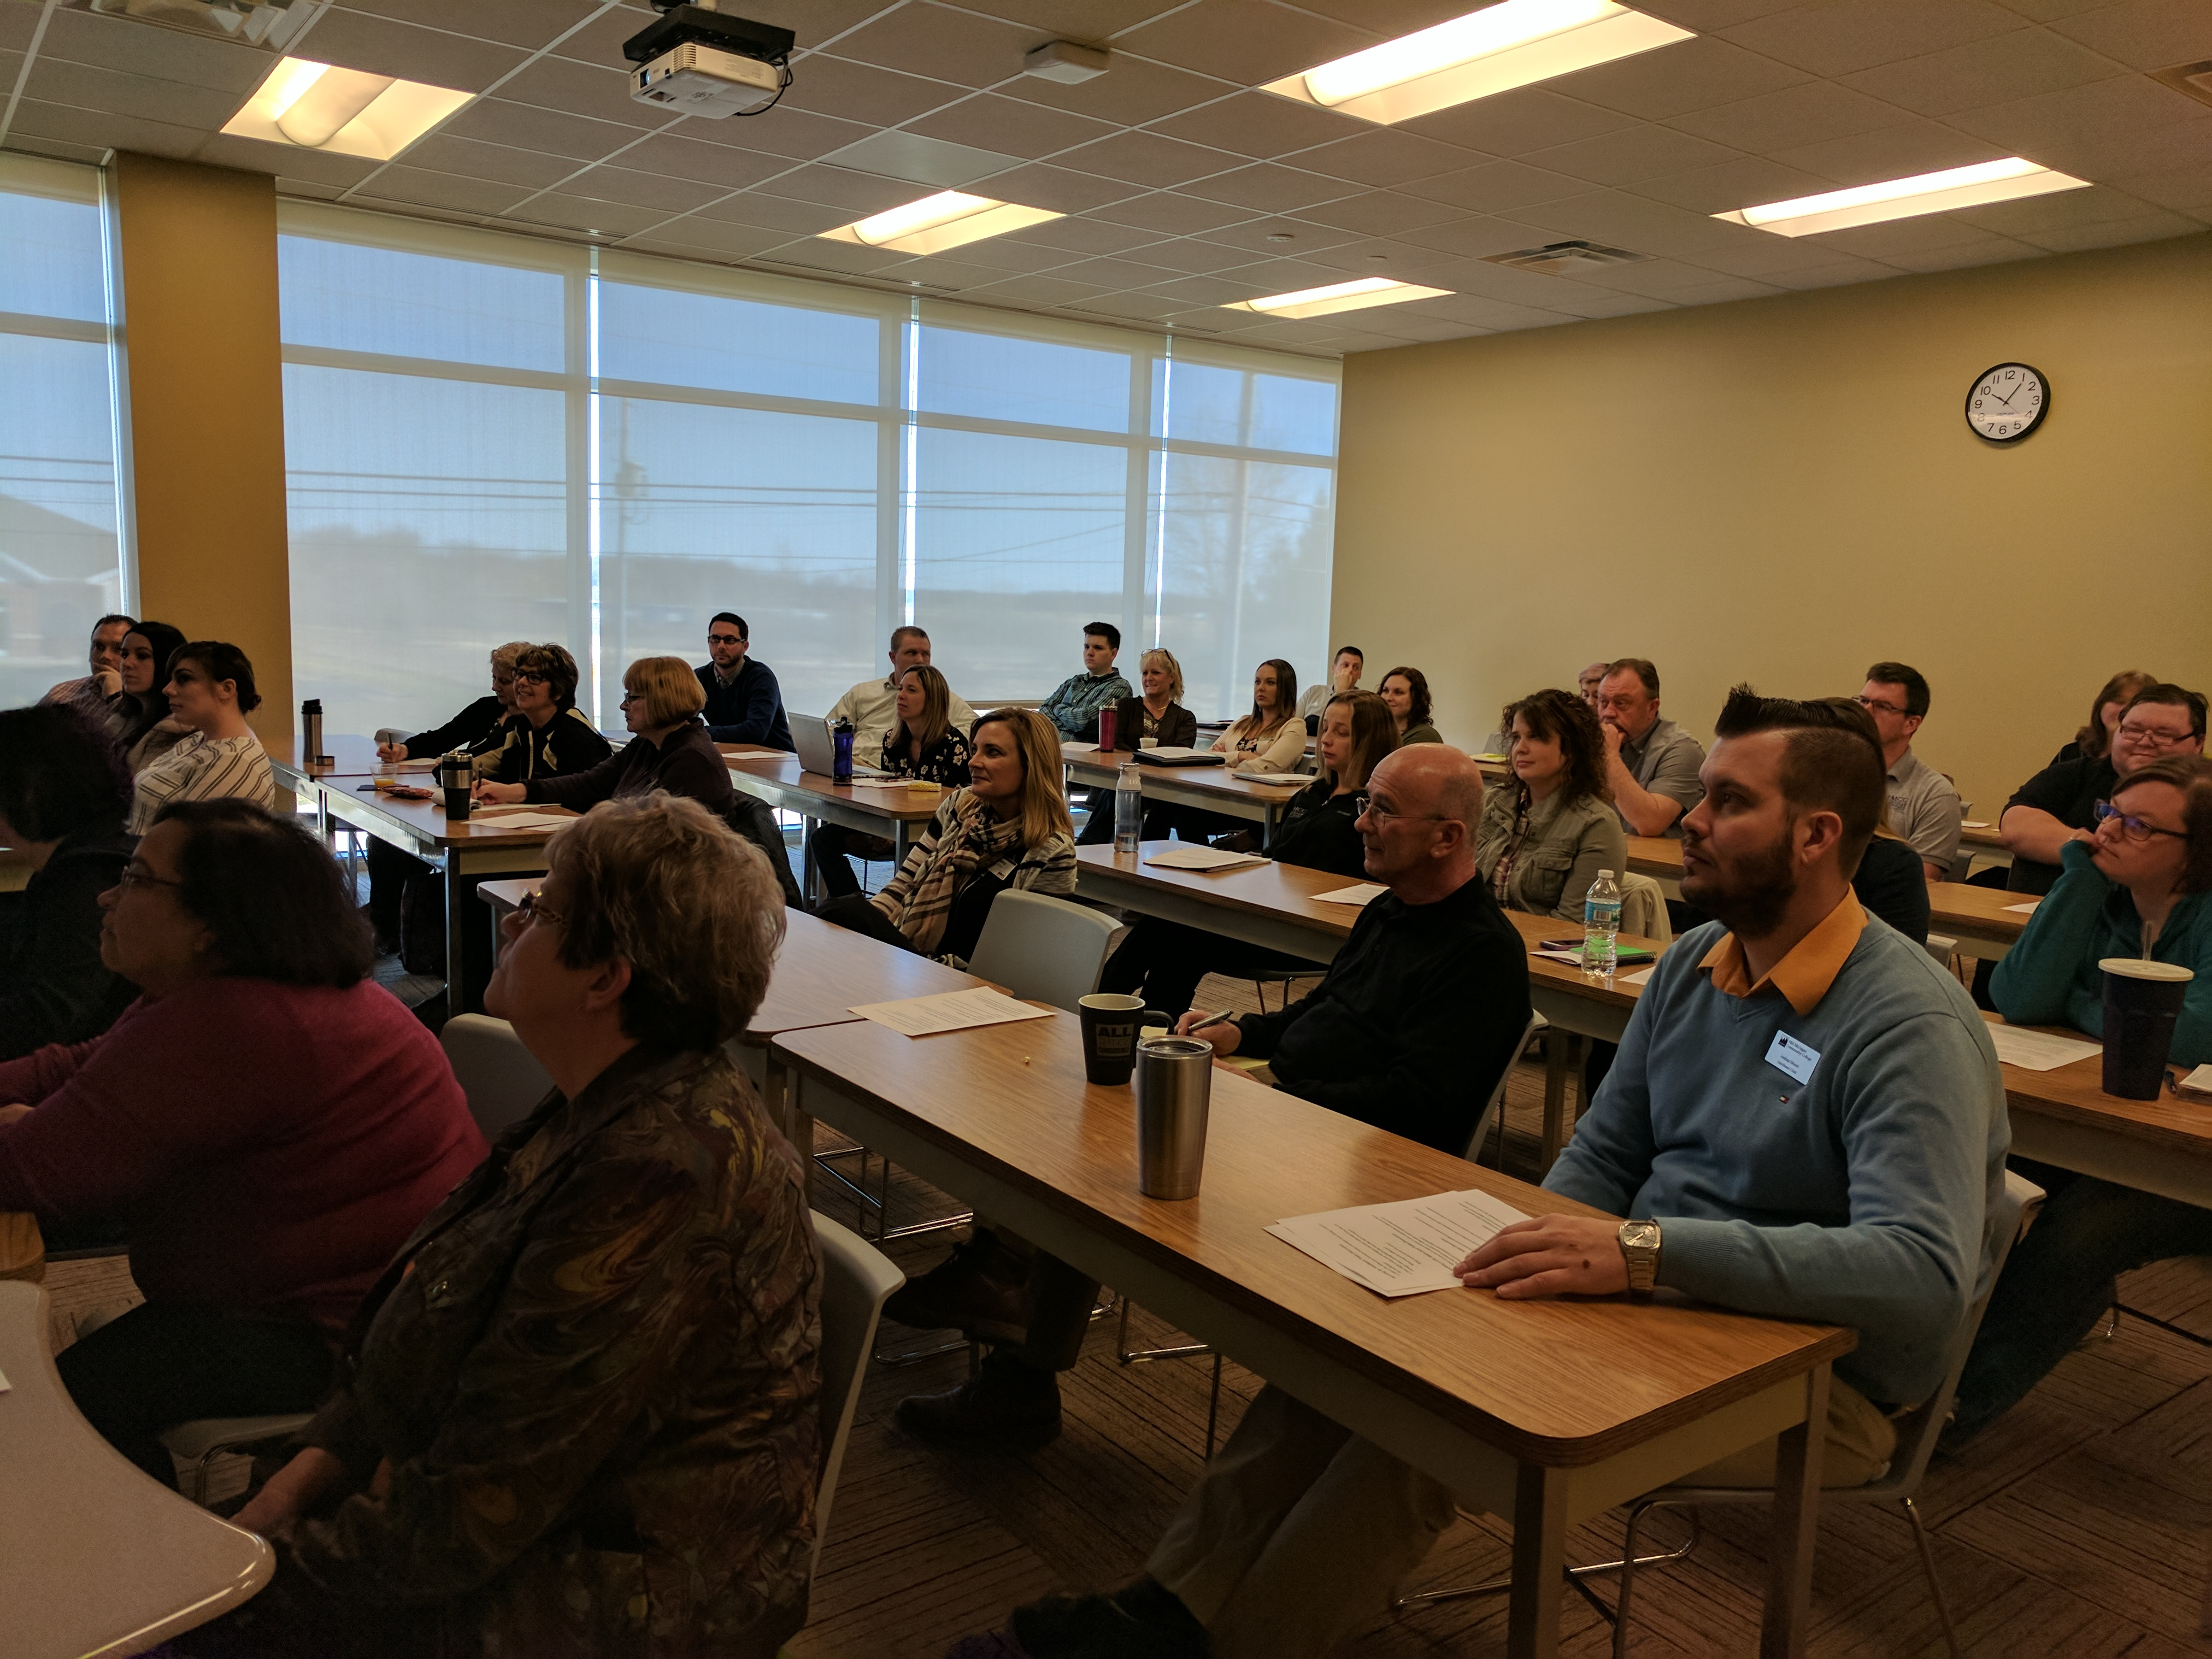 Classroom filled with employees and faculty during a professional development session